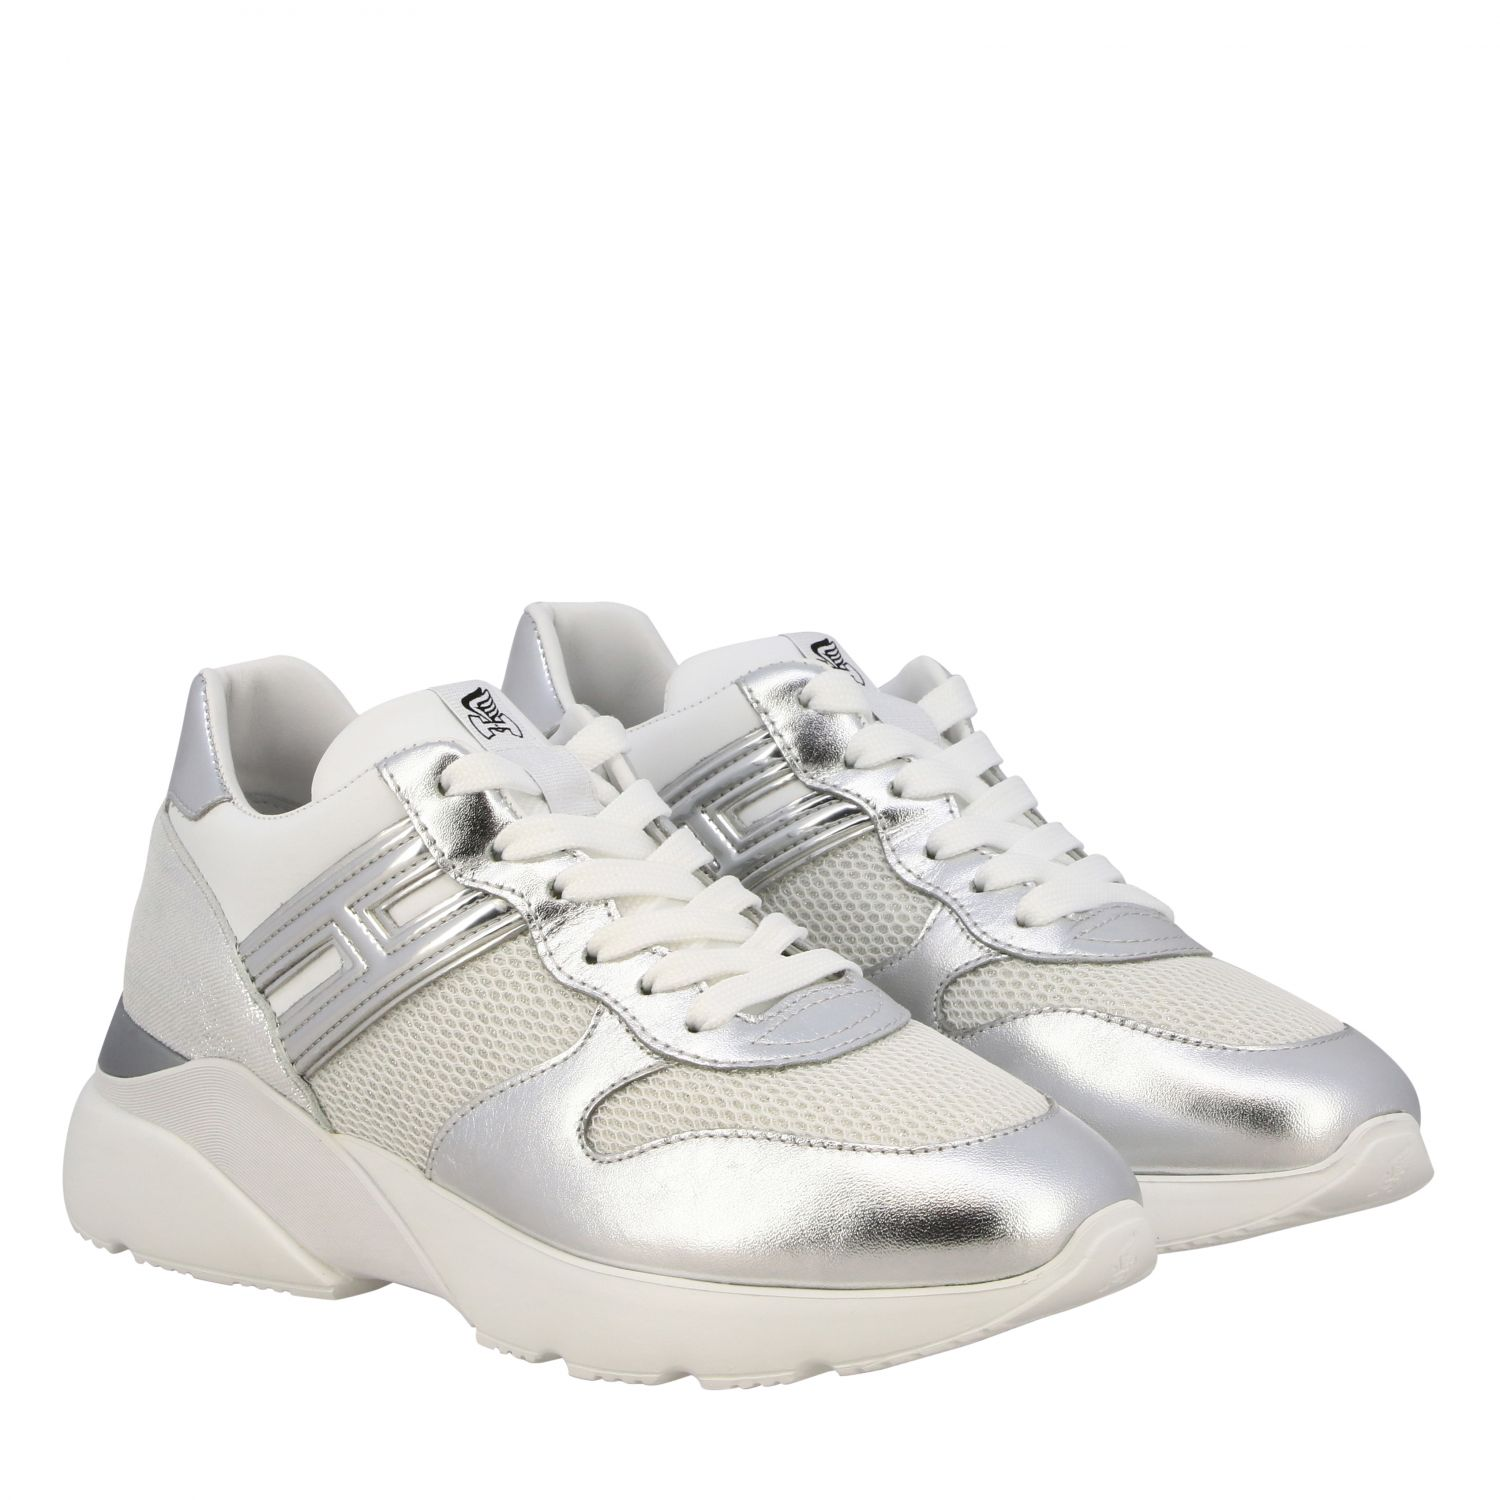 Hogan Active one 385 sneakers in laminated leather and glitter mesh